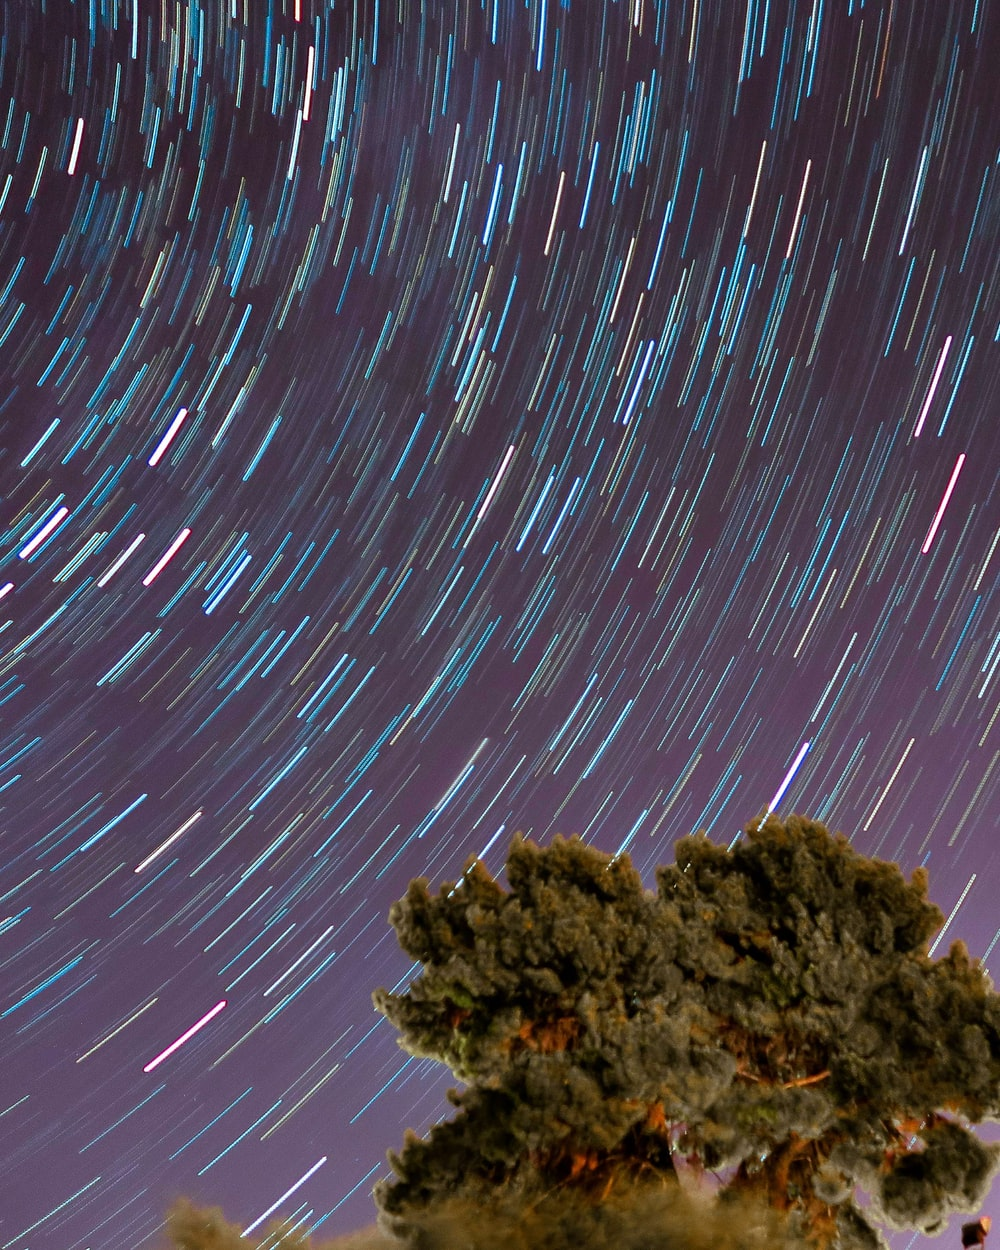 time-lapsed photography of tree under starry night